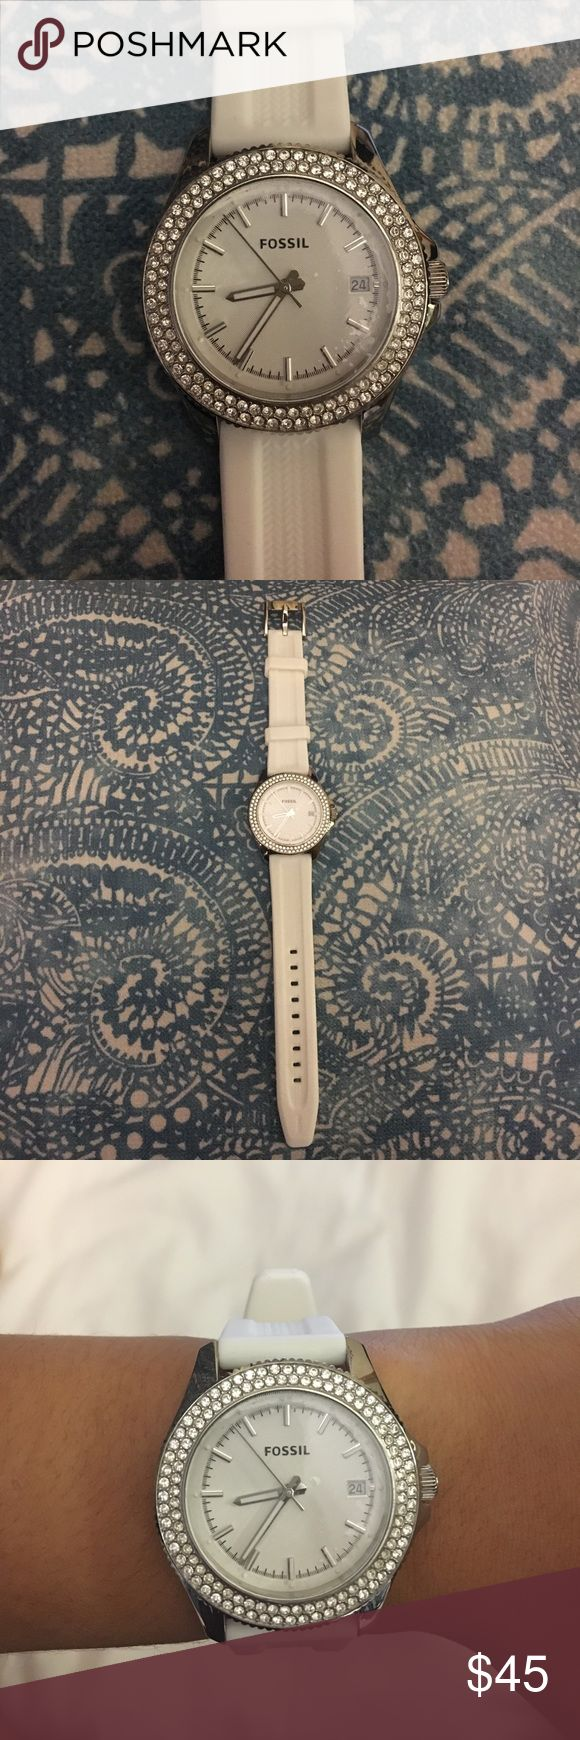 Fossil watch White fossil watch with silicone watch strap. In great shape, the white strap is very clean. Still has the clear film covering the face of the watch. Can include a fossil box. Needs a new battery. Fossil Accessories Watches